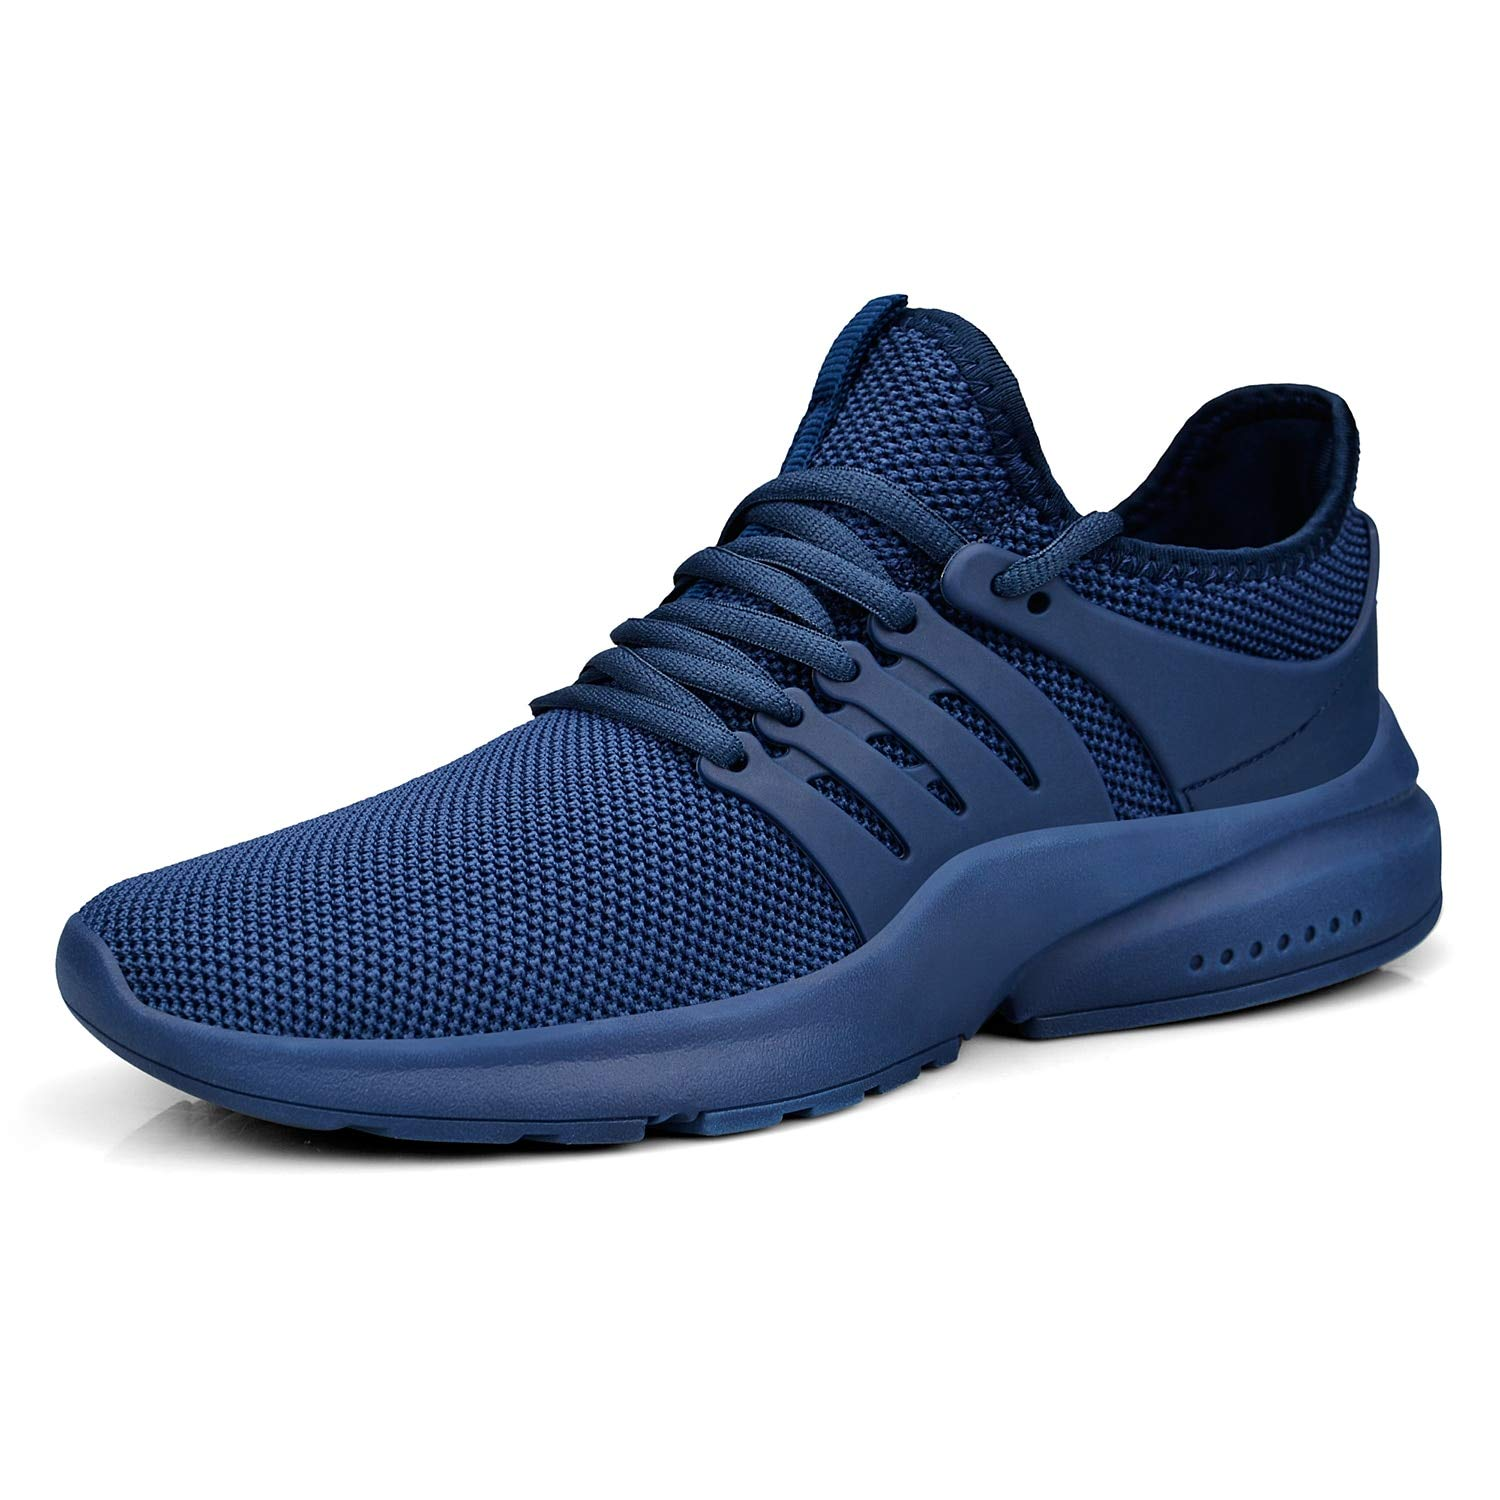 Feetmat Men's Running Shoes Lightweight Non Slip Breathable Mesh Sneakers Sports Athletic Walking Shoes Blue 12M by Feetmat